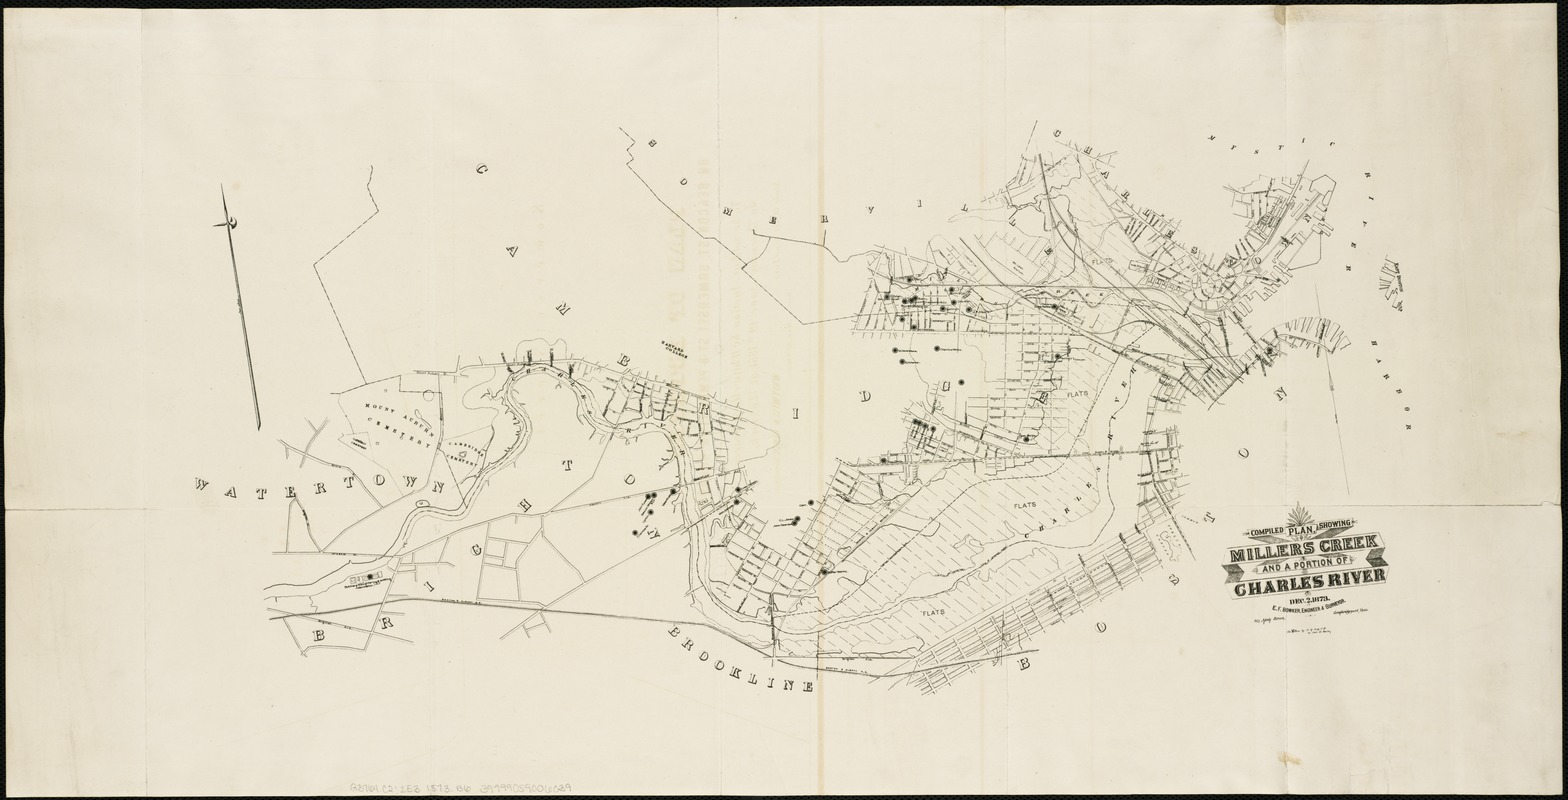 Compiled plan, showing Millers Creek and a portion of Charles River